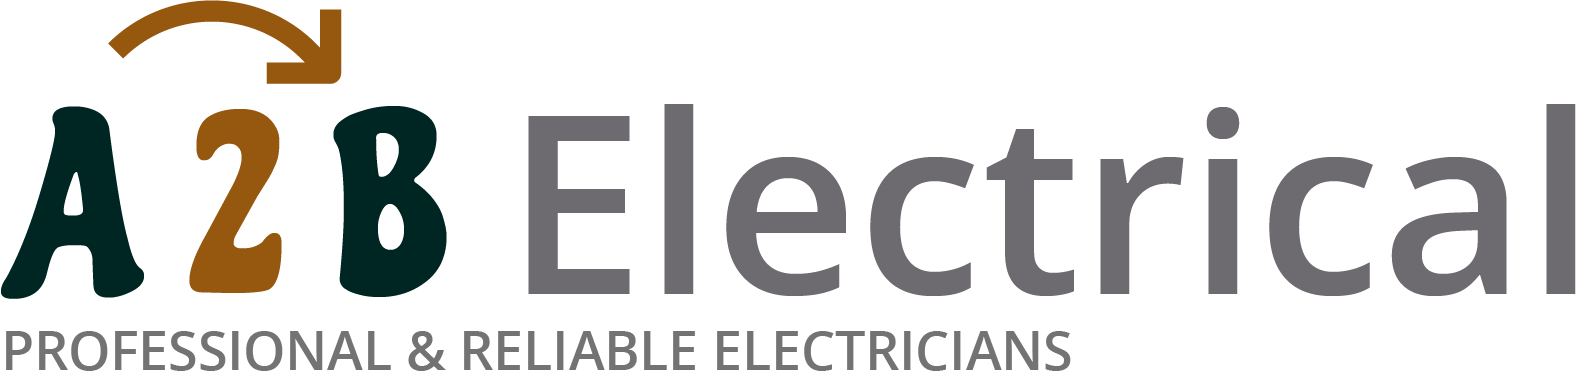 If you have electrical wiring problems in Beddington, we can provide an electrician to have a look for you.